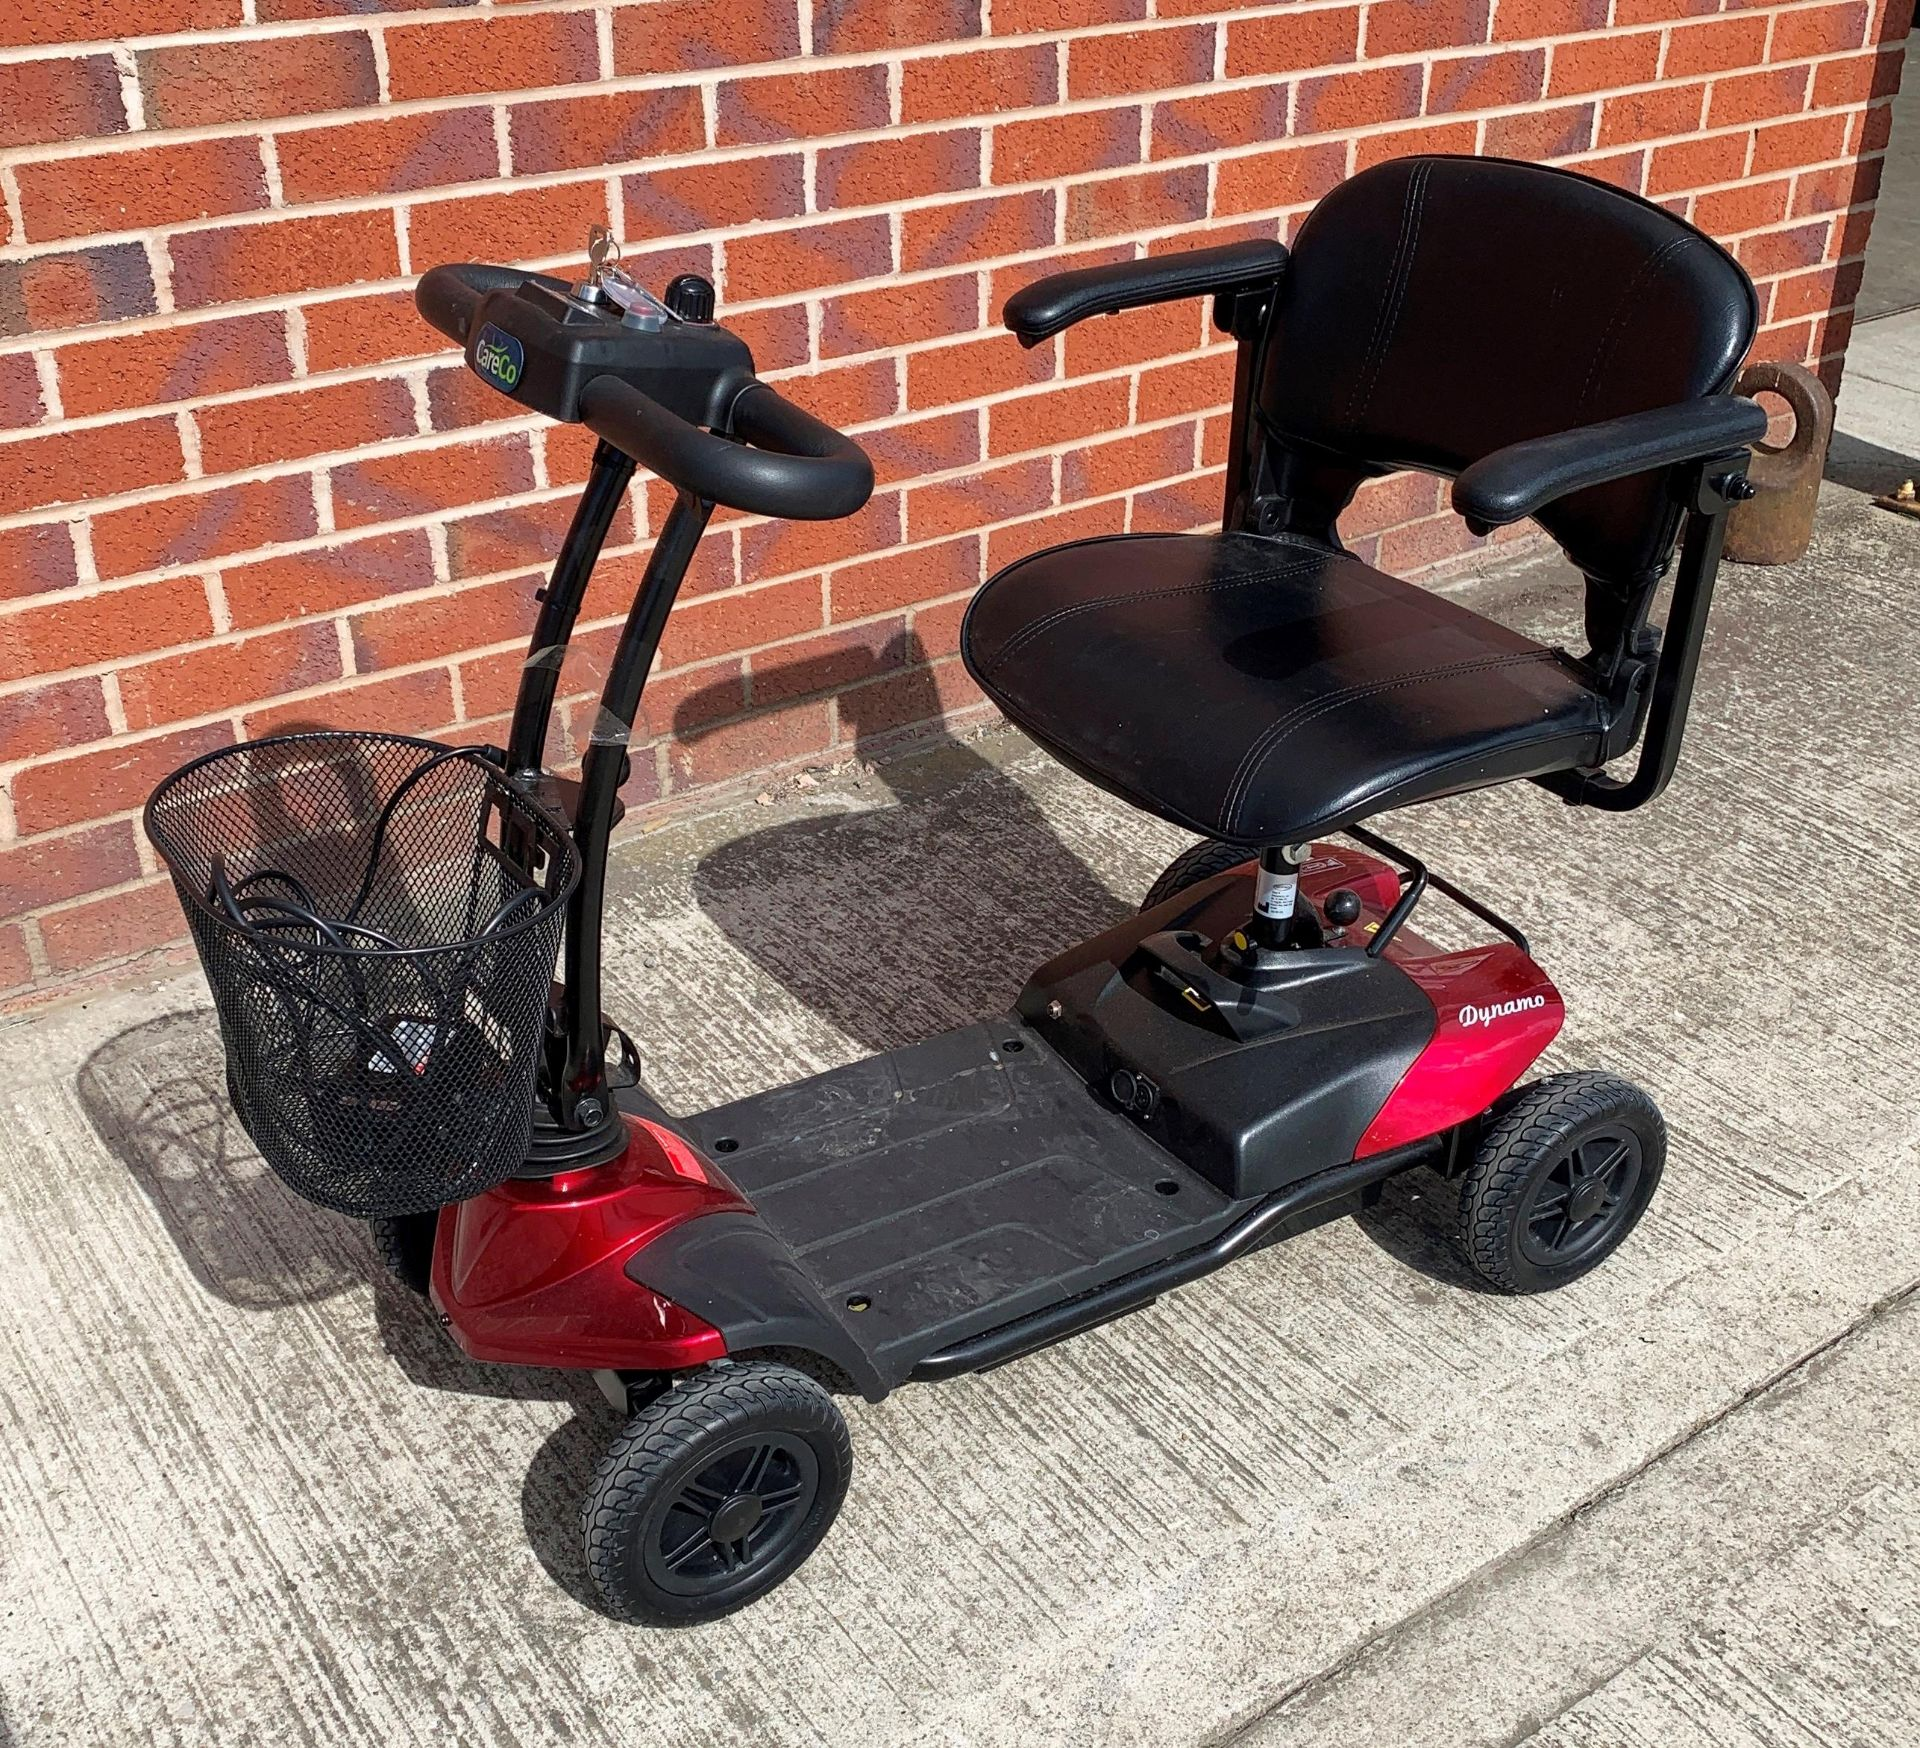 A CTM Dynamo 4 wheel mobility scooter - max weight 150kGs, - Image 2 of 6